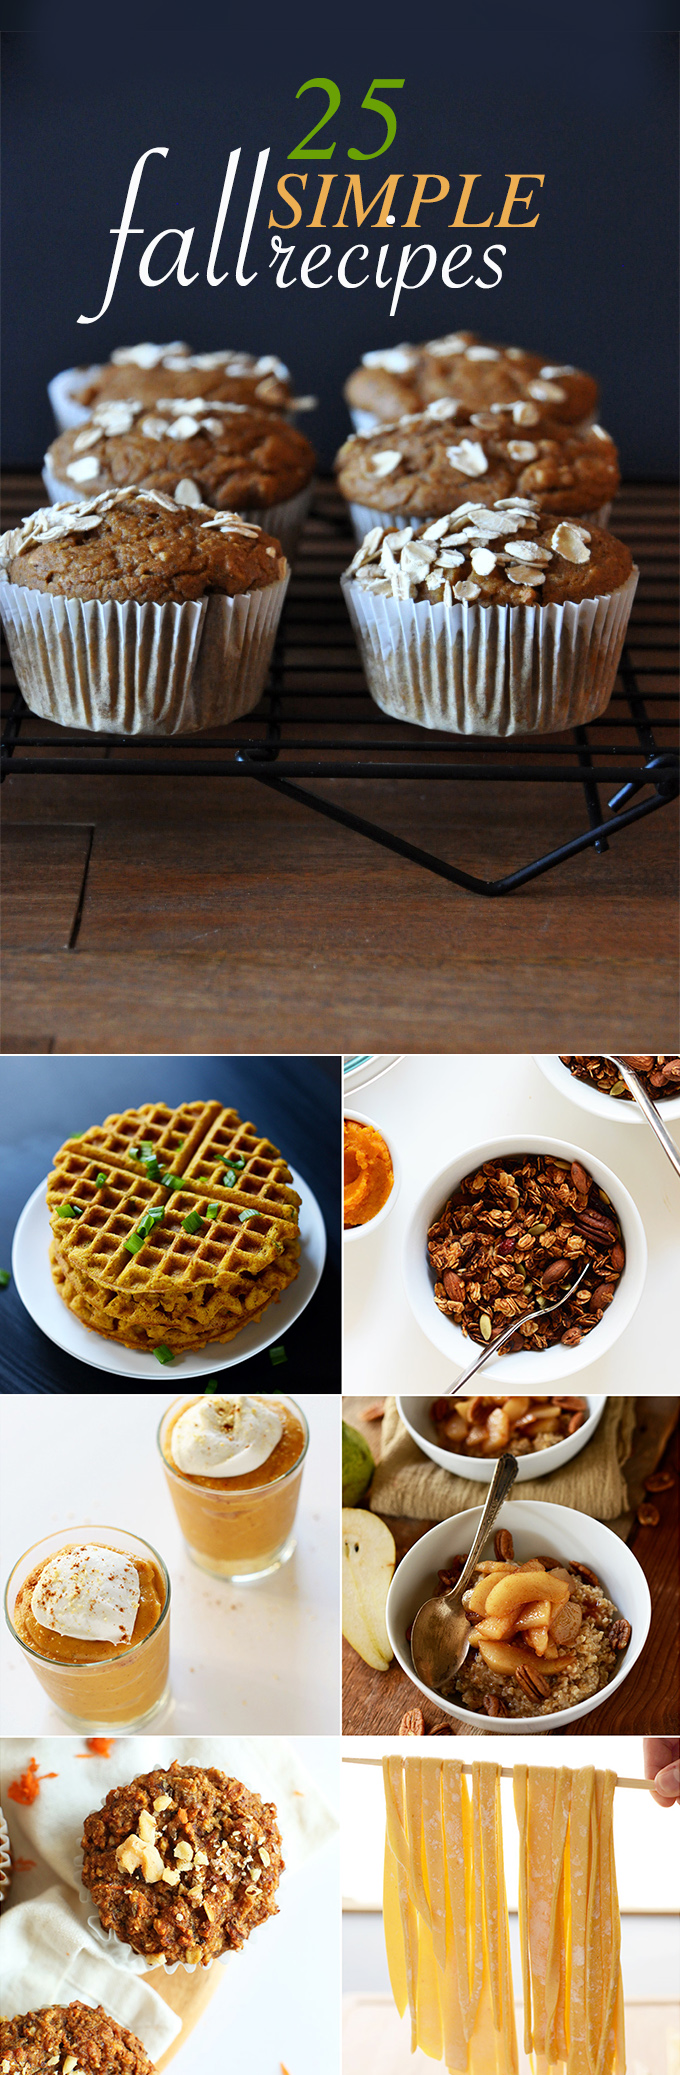 25 Simple Fall Recipes! 30 minutes, 10 ingredients OR 1 Bowl required | Minimalist Baker